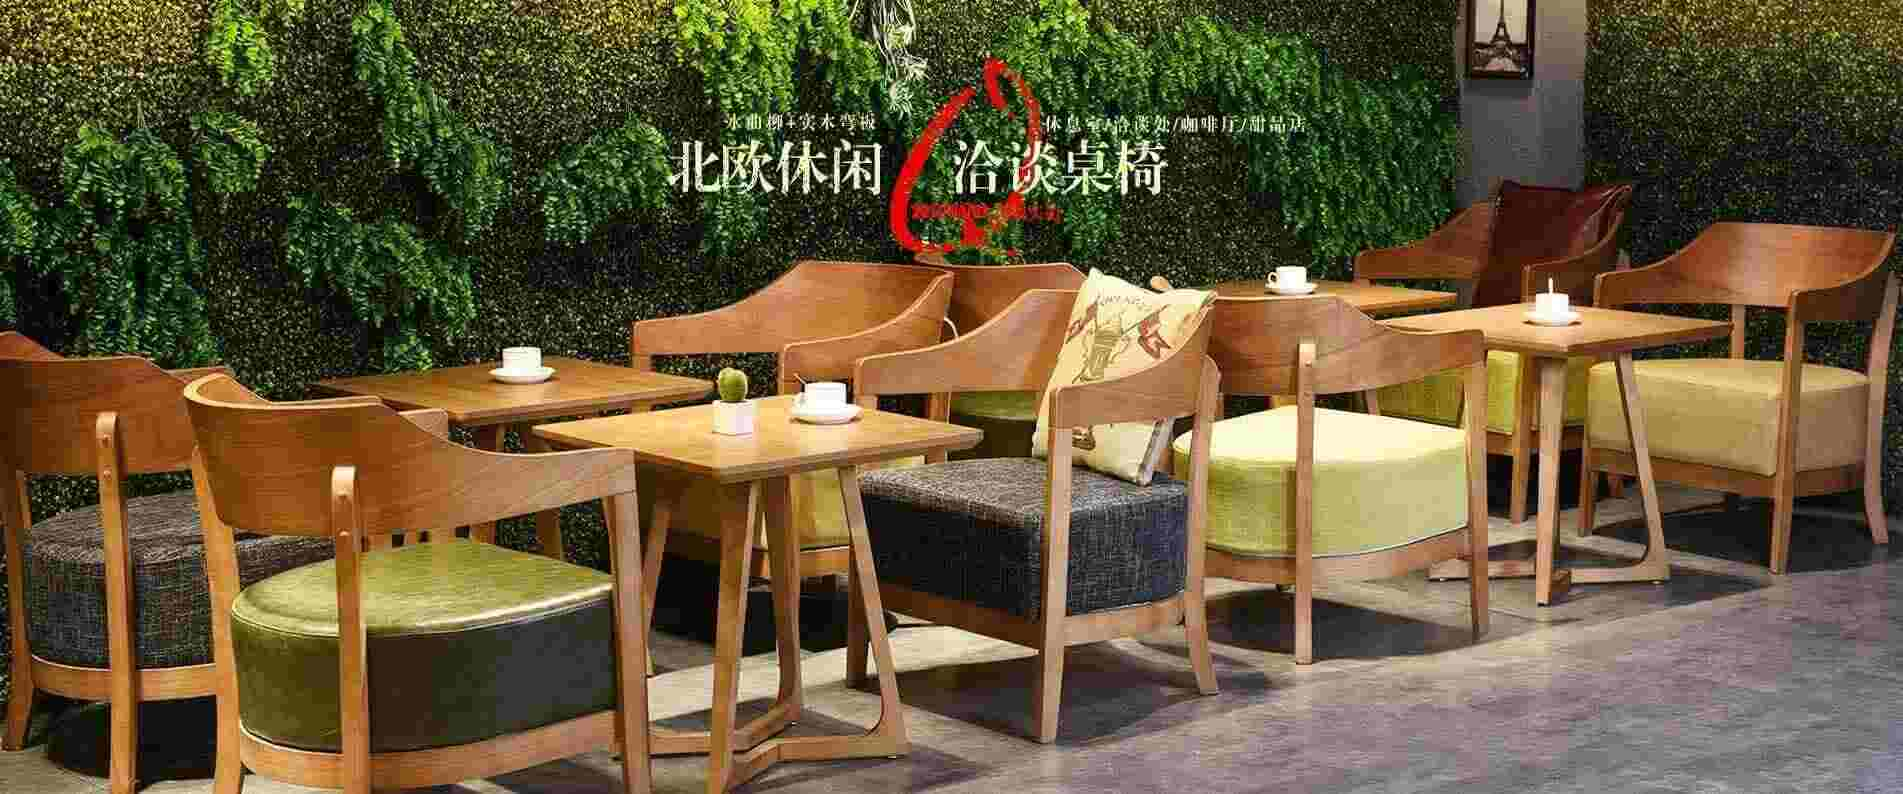 Nigeria Restaurant furniture